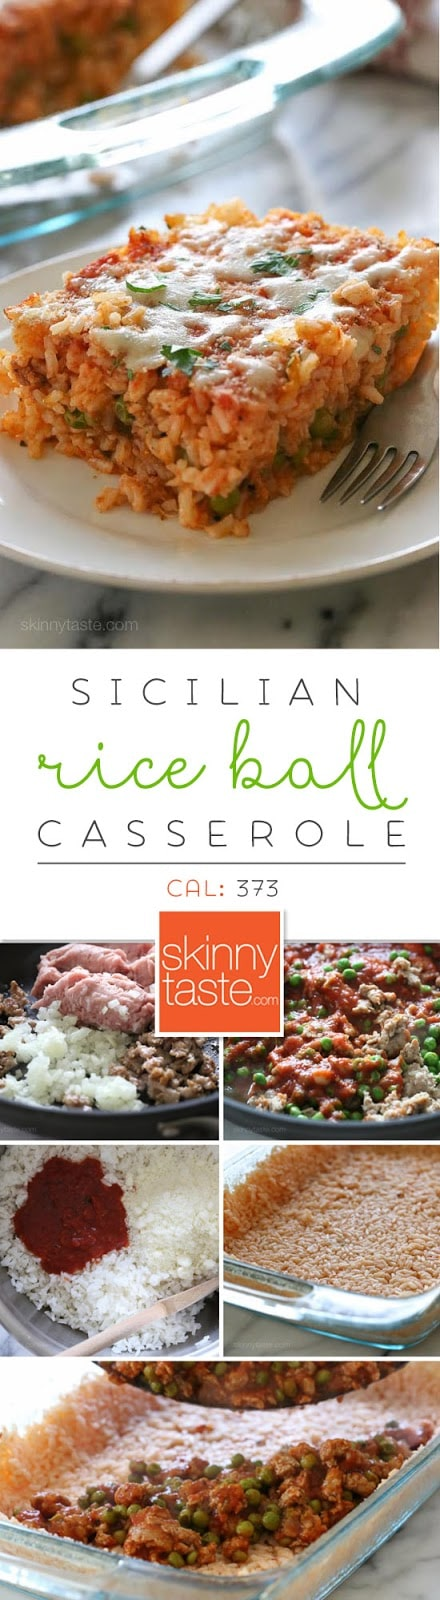 Sicilian Rice Ball Casserole filled with ground turkey and a little sausage adds lots of flavor, plus peas and sauce. Freezes well, great for potlucks and family friendly!